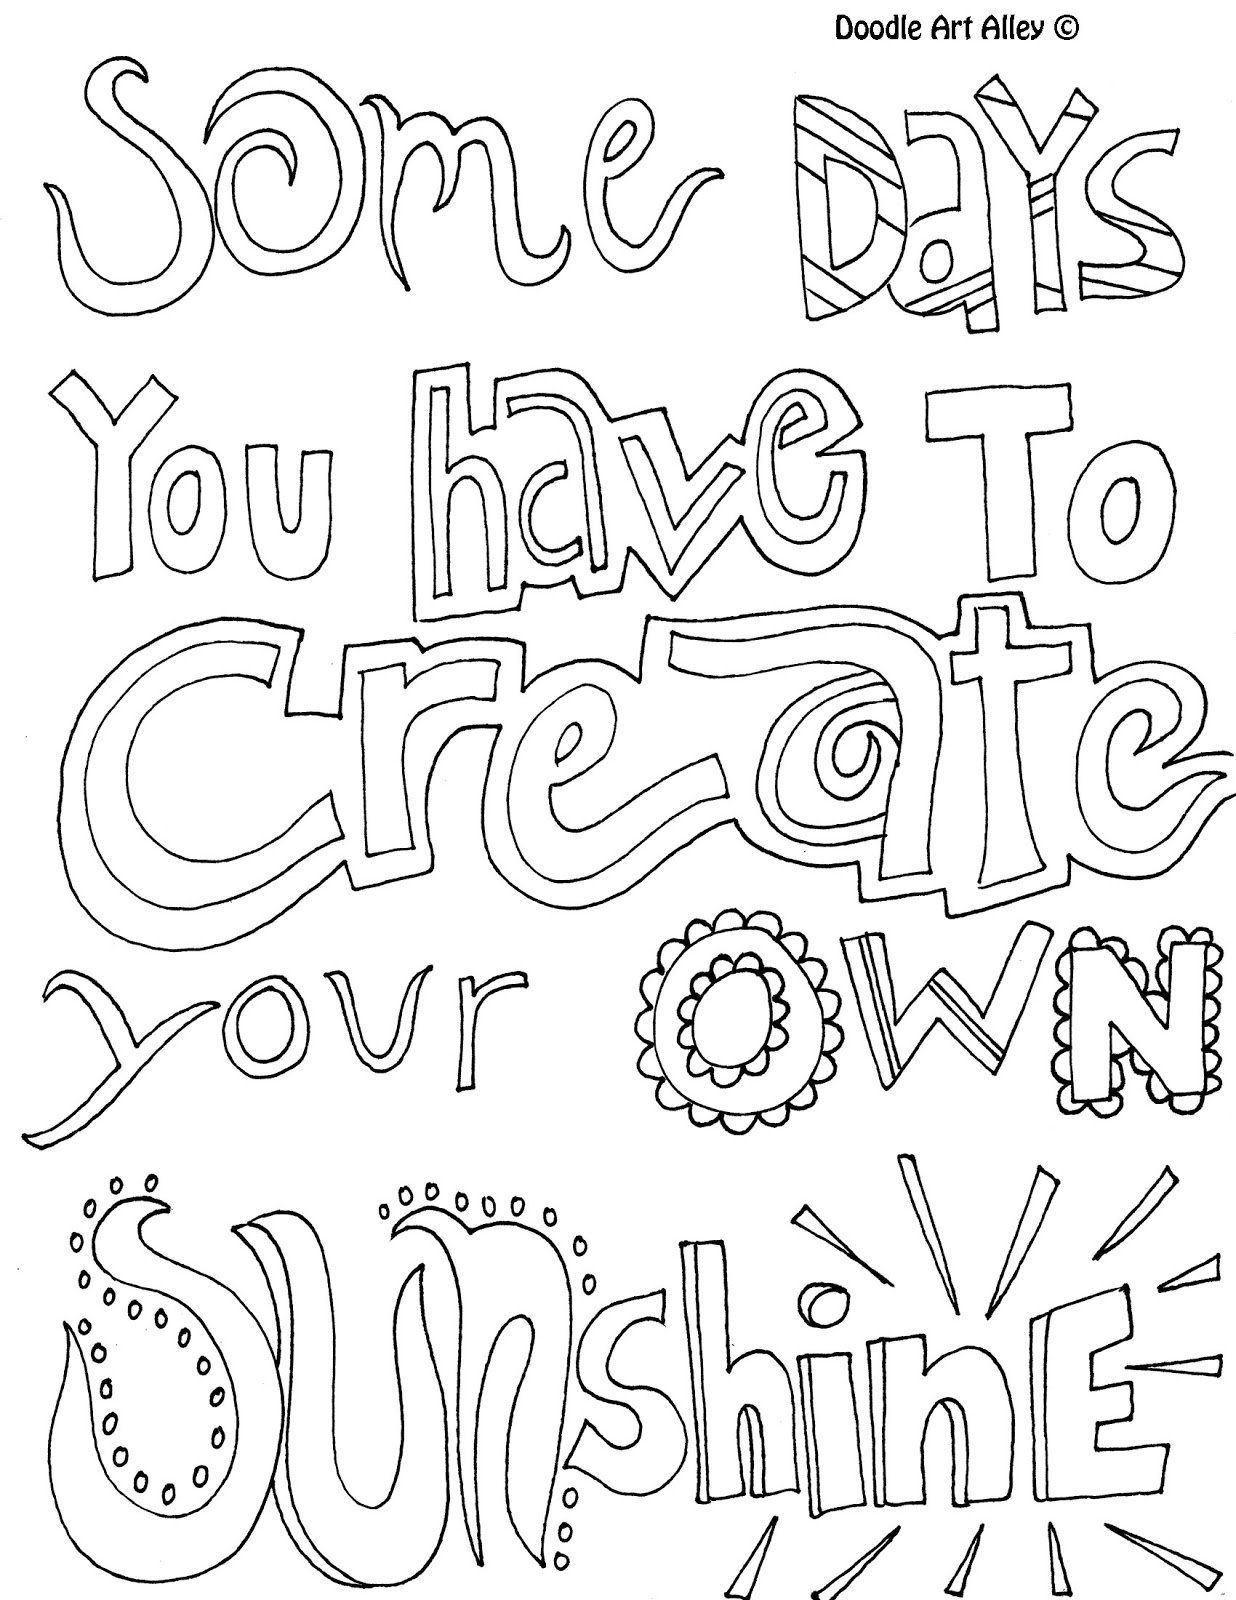 Free coloring pages growth mindset - Make Your Own Coloring Pages Free Coloring Pages Kids Collection For Make Your Own Coloring Page Cool Coloring Pages And Beautiful Color Art